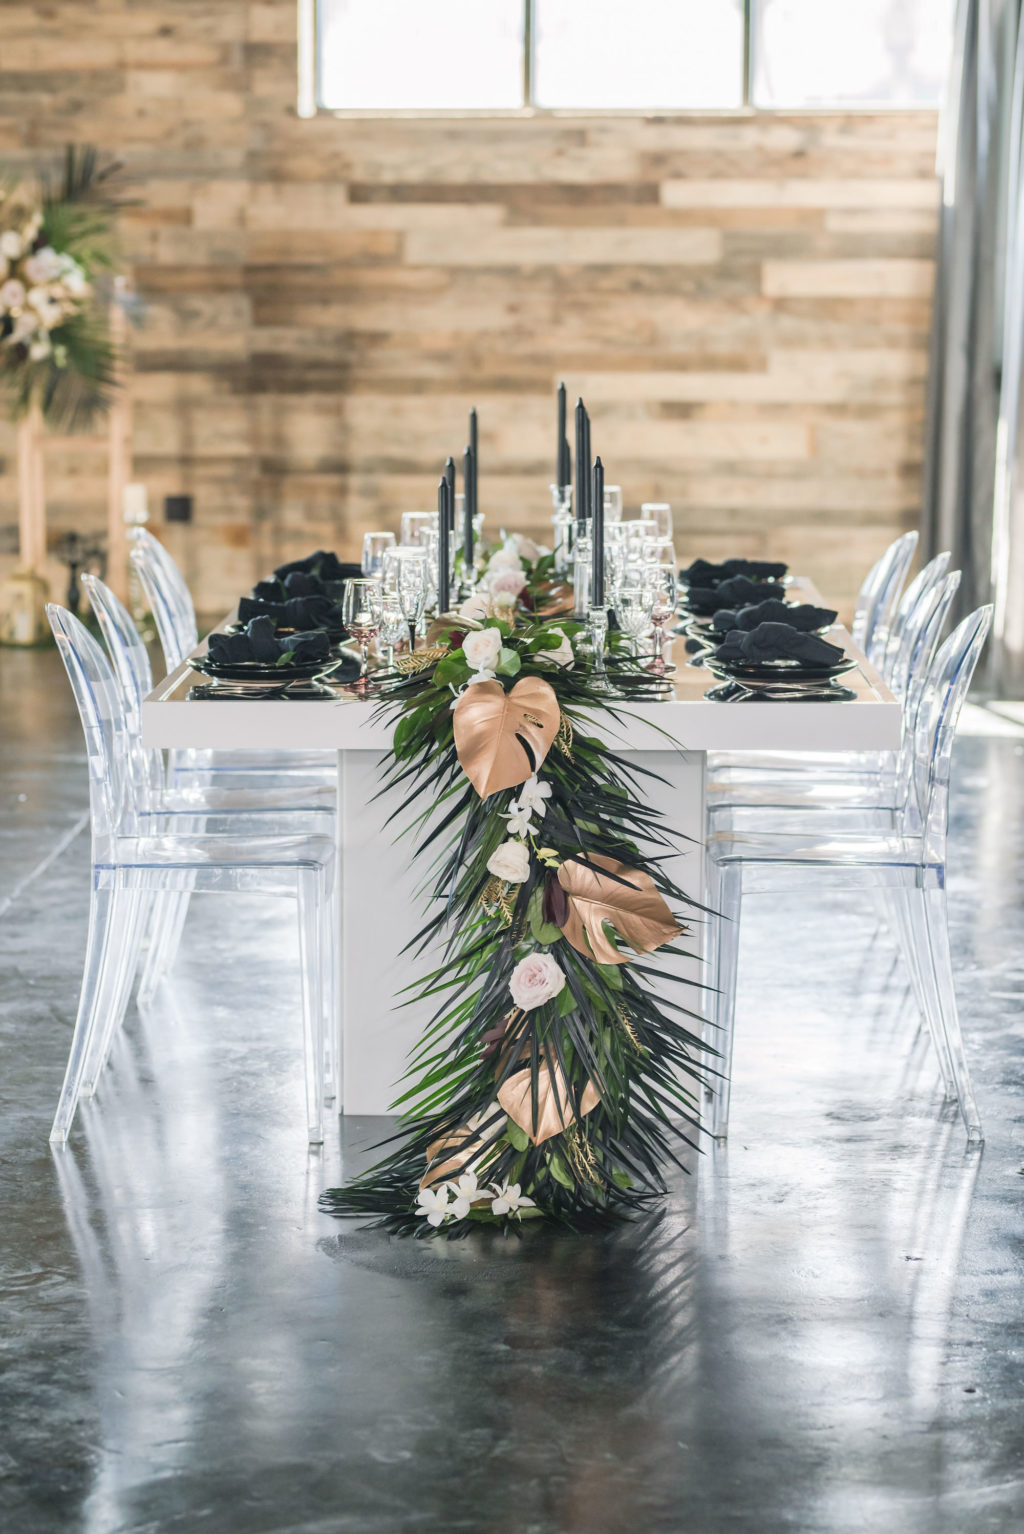 Dark Luxe, Romantic Wedding Styled Shoot Decor, Long White Table with Palm Fronds, Gold Painted Monstera Leaves, Blush Pink Table Runner, Black Candlesticks, Ghost Acrylic Chairs | Tampa Bay Wedding Planner Elegant Affairs by Design | Madeira Beach Wedding Venue The West Events Space